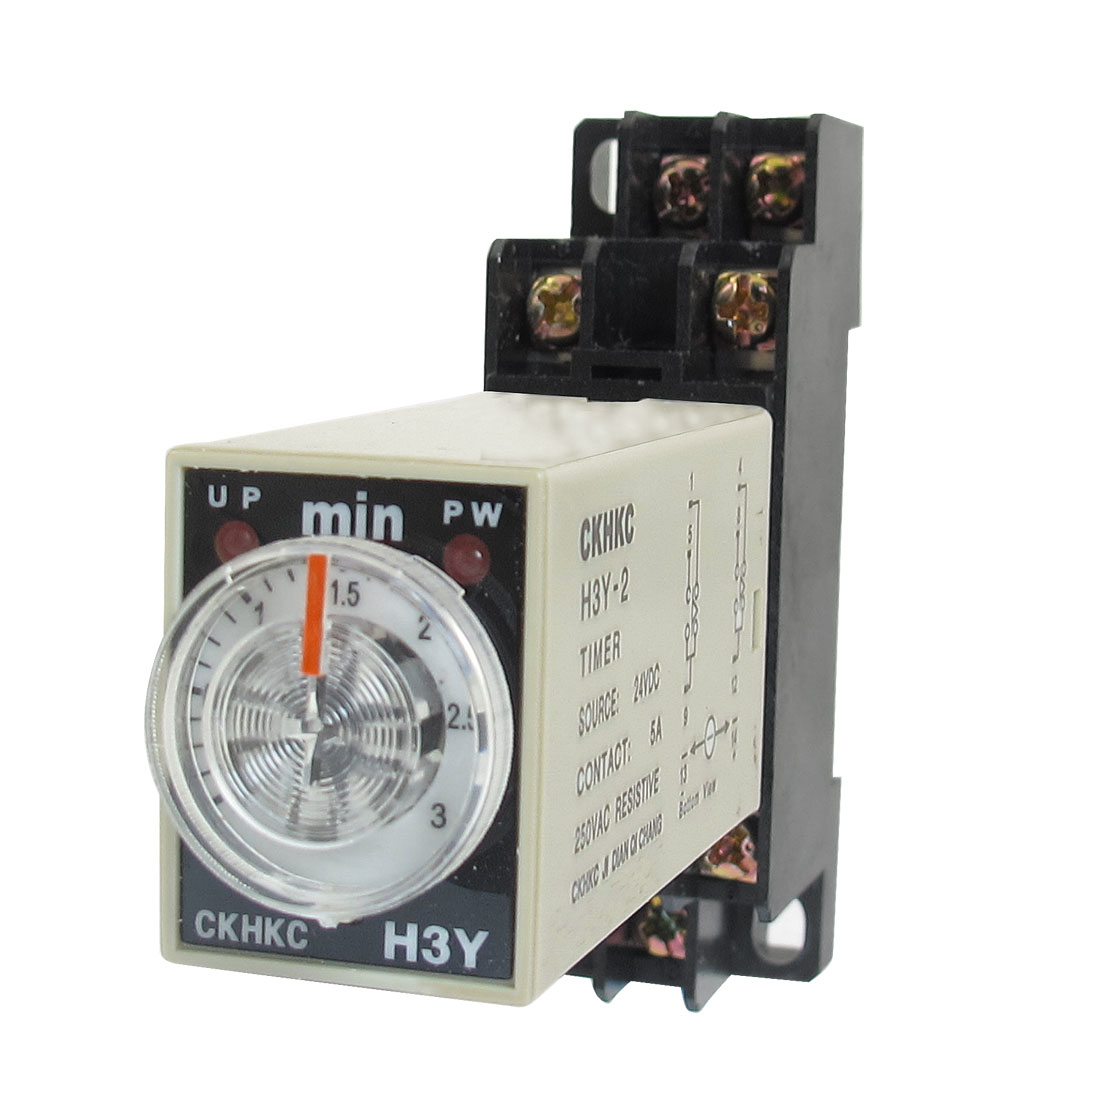 DC 24V H3Y-2 0-3 Minutes 3Min DPDT 8 Pins Power on Time Delay Relay w Socket